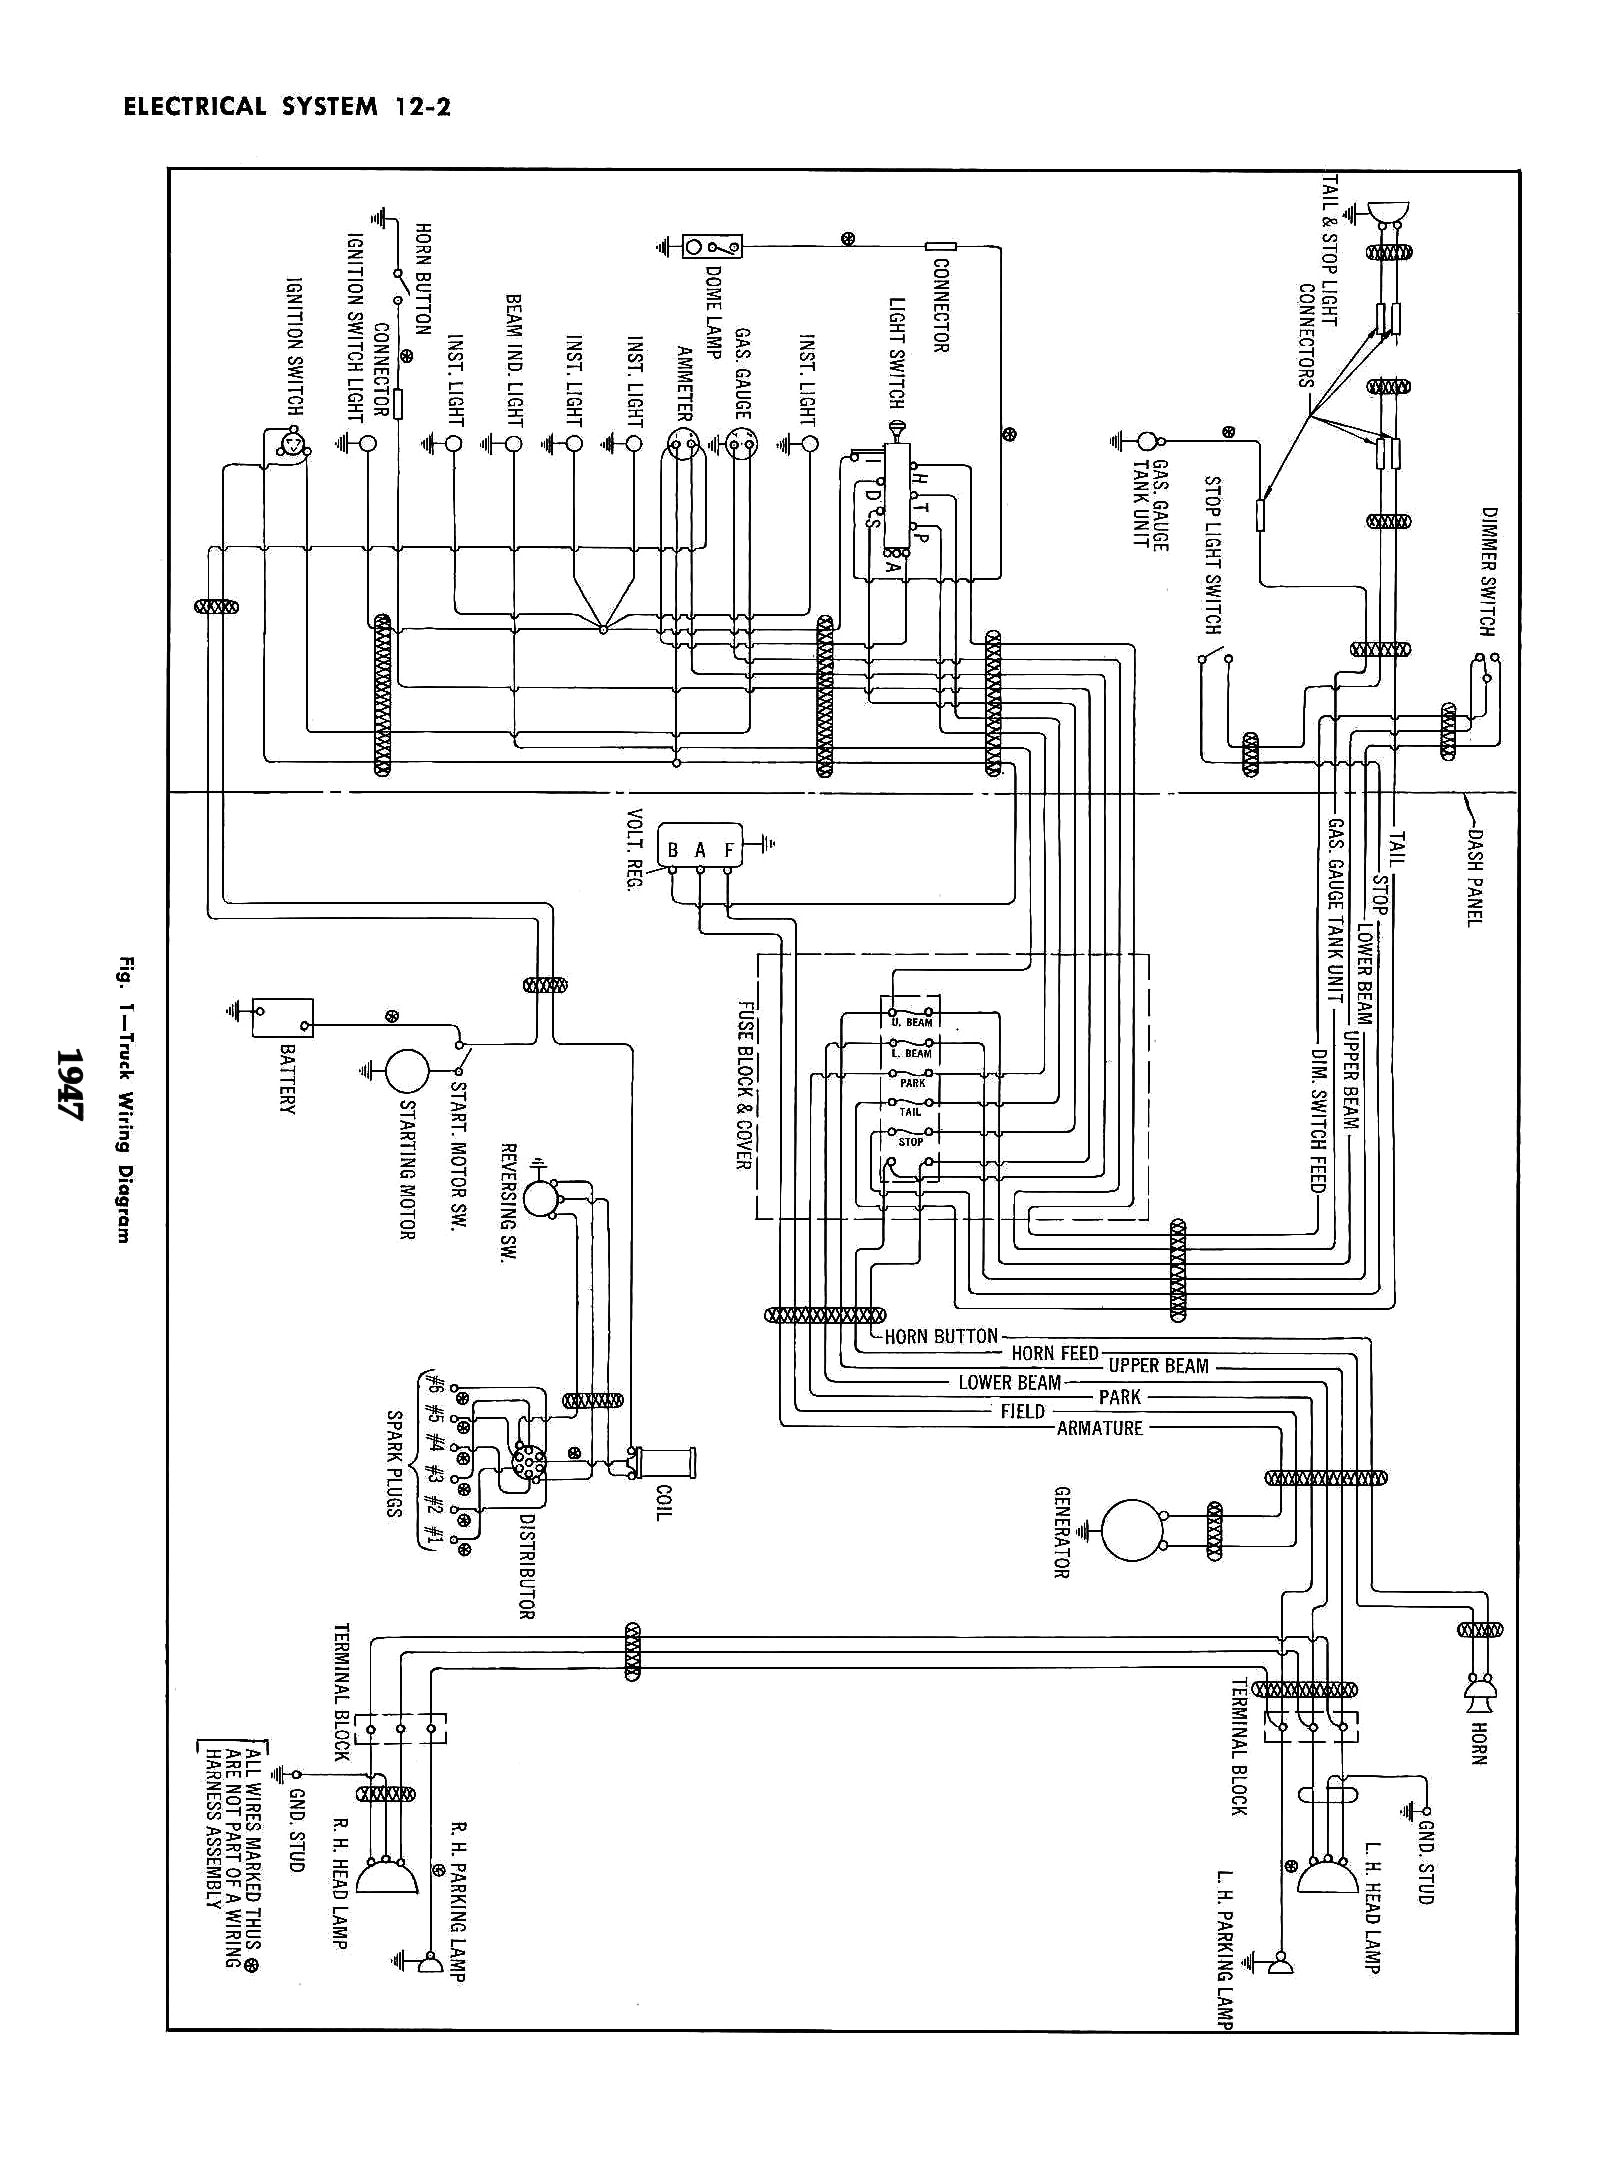 chevy wiring diagrams 1953 Chevy Pickup Wiring Diagram